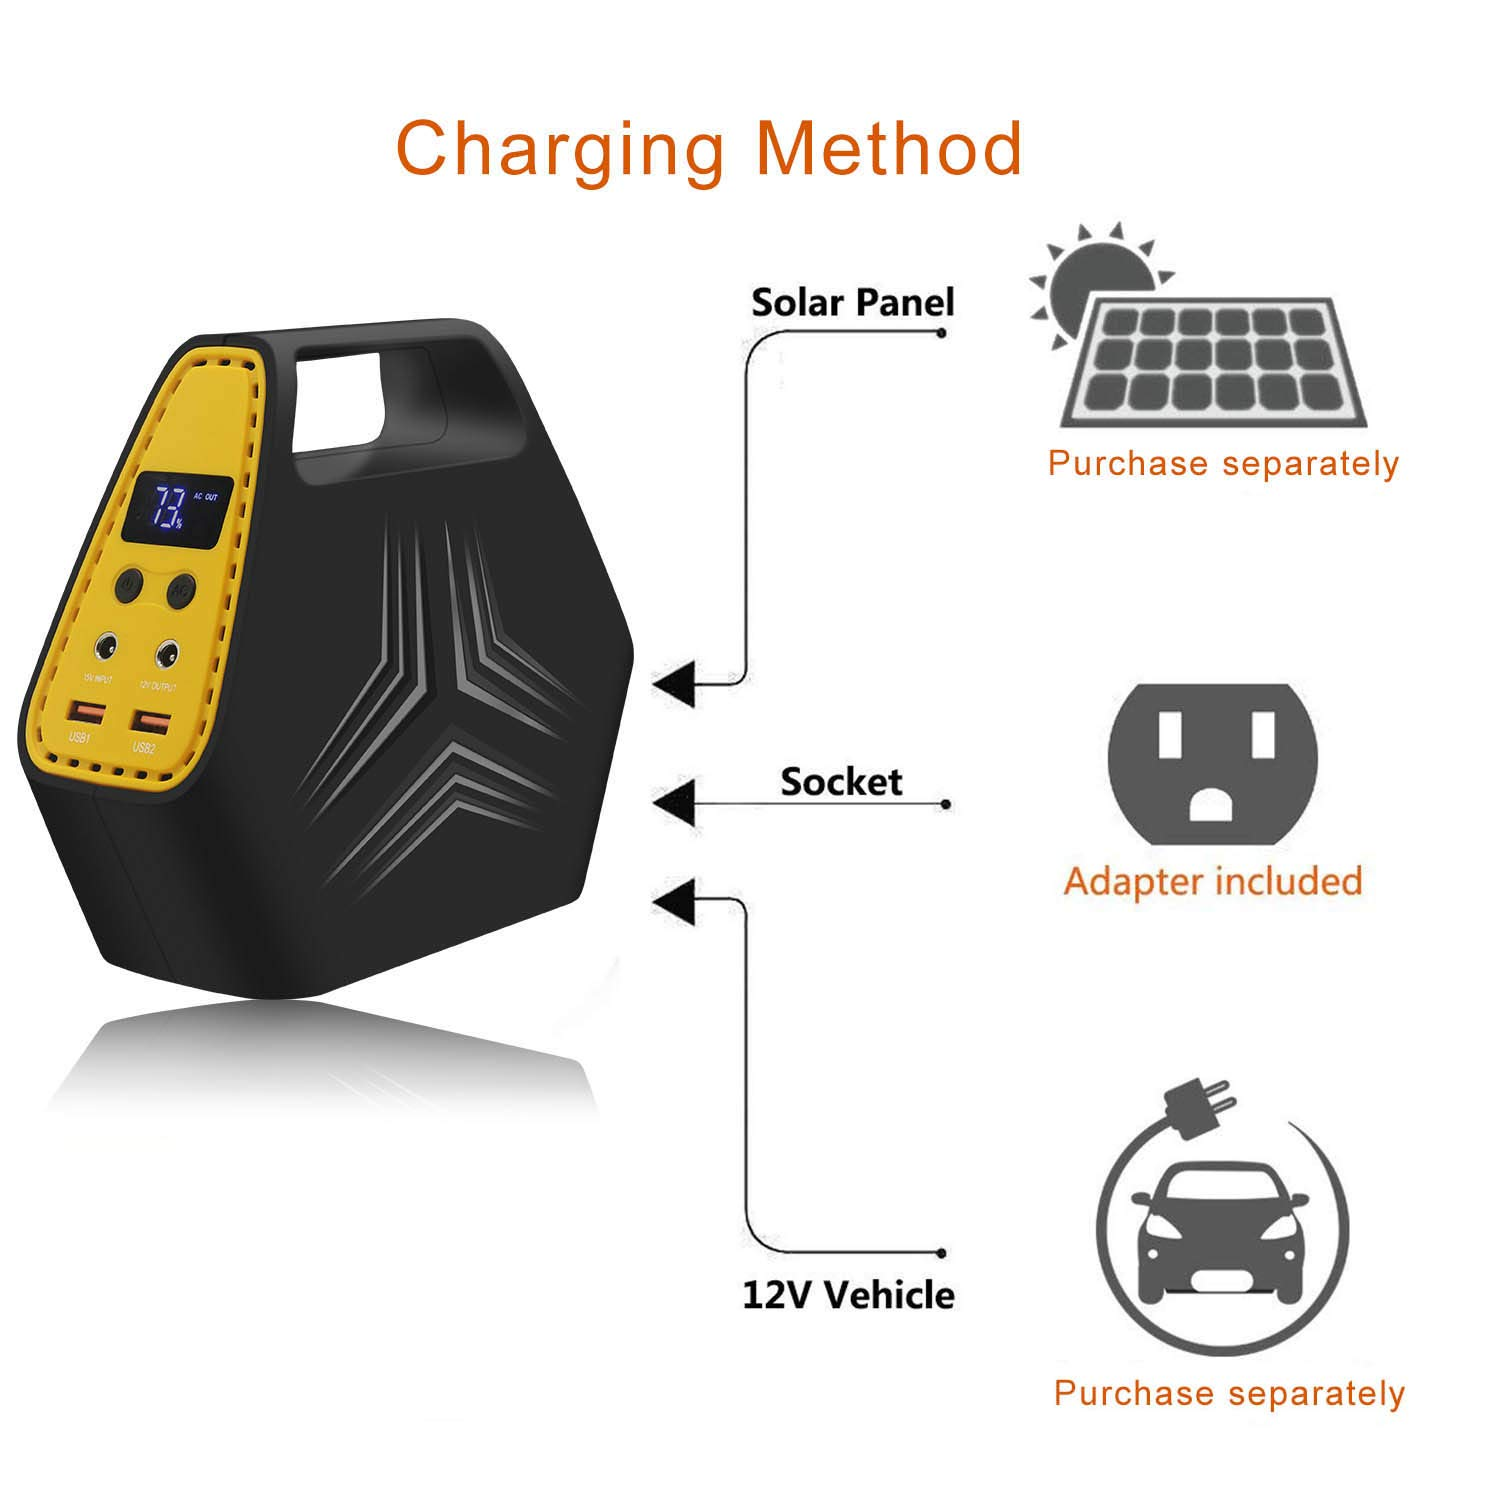 Portable Power Station 146wh 42000mah Ac Bank Solar Powered Cars Diagram The Car Accessory Socket Generator With 2 110v Outlet Dc Ports Qc30 Usb Ups Lithium